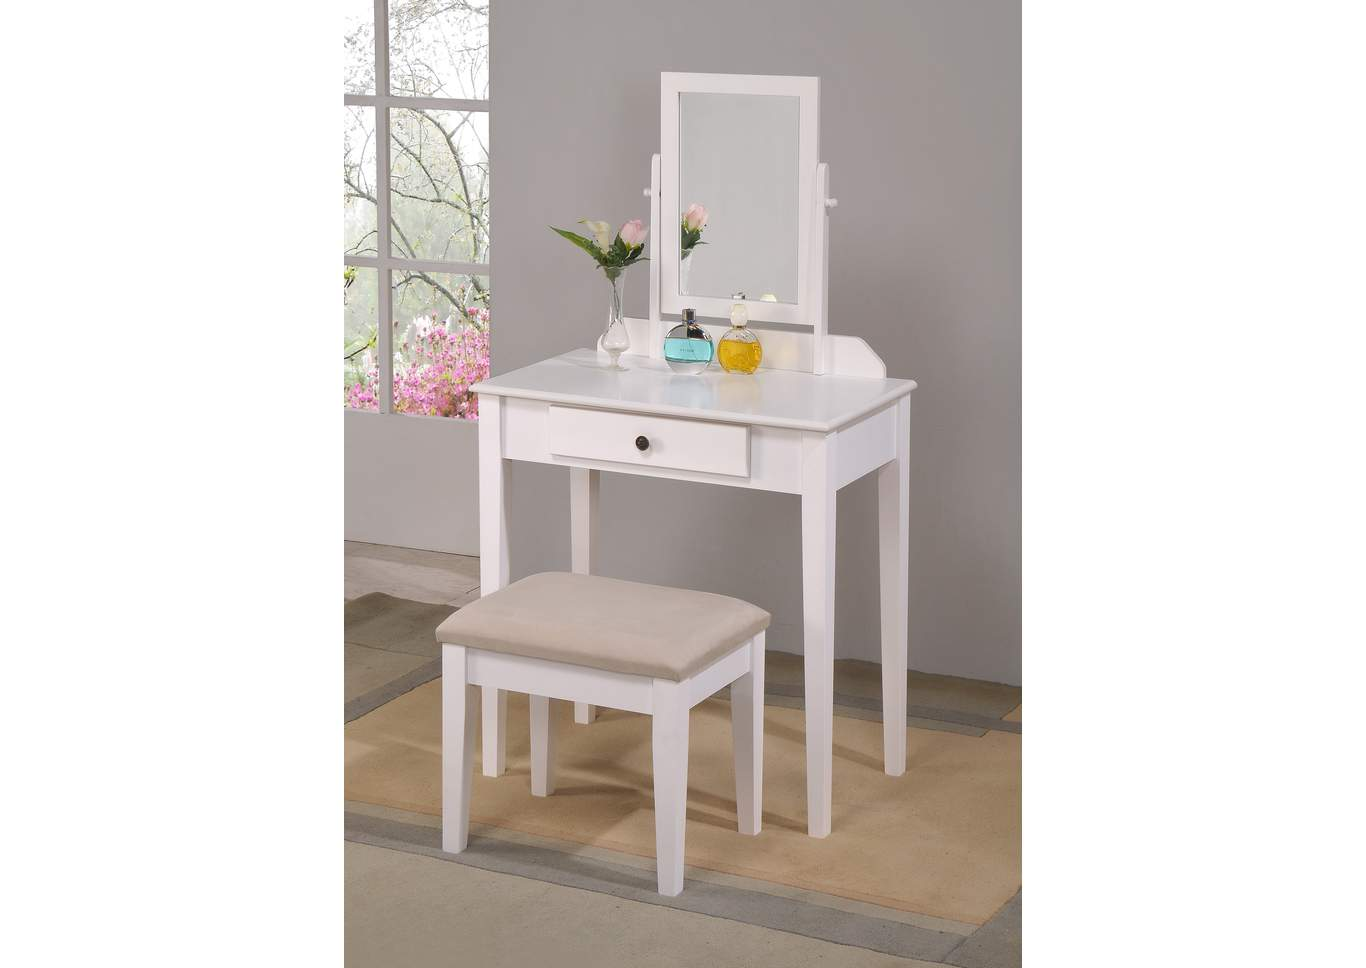 Meyers Amp Tabakin Inc Iris White Vanity Table Amp Stool